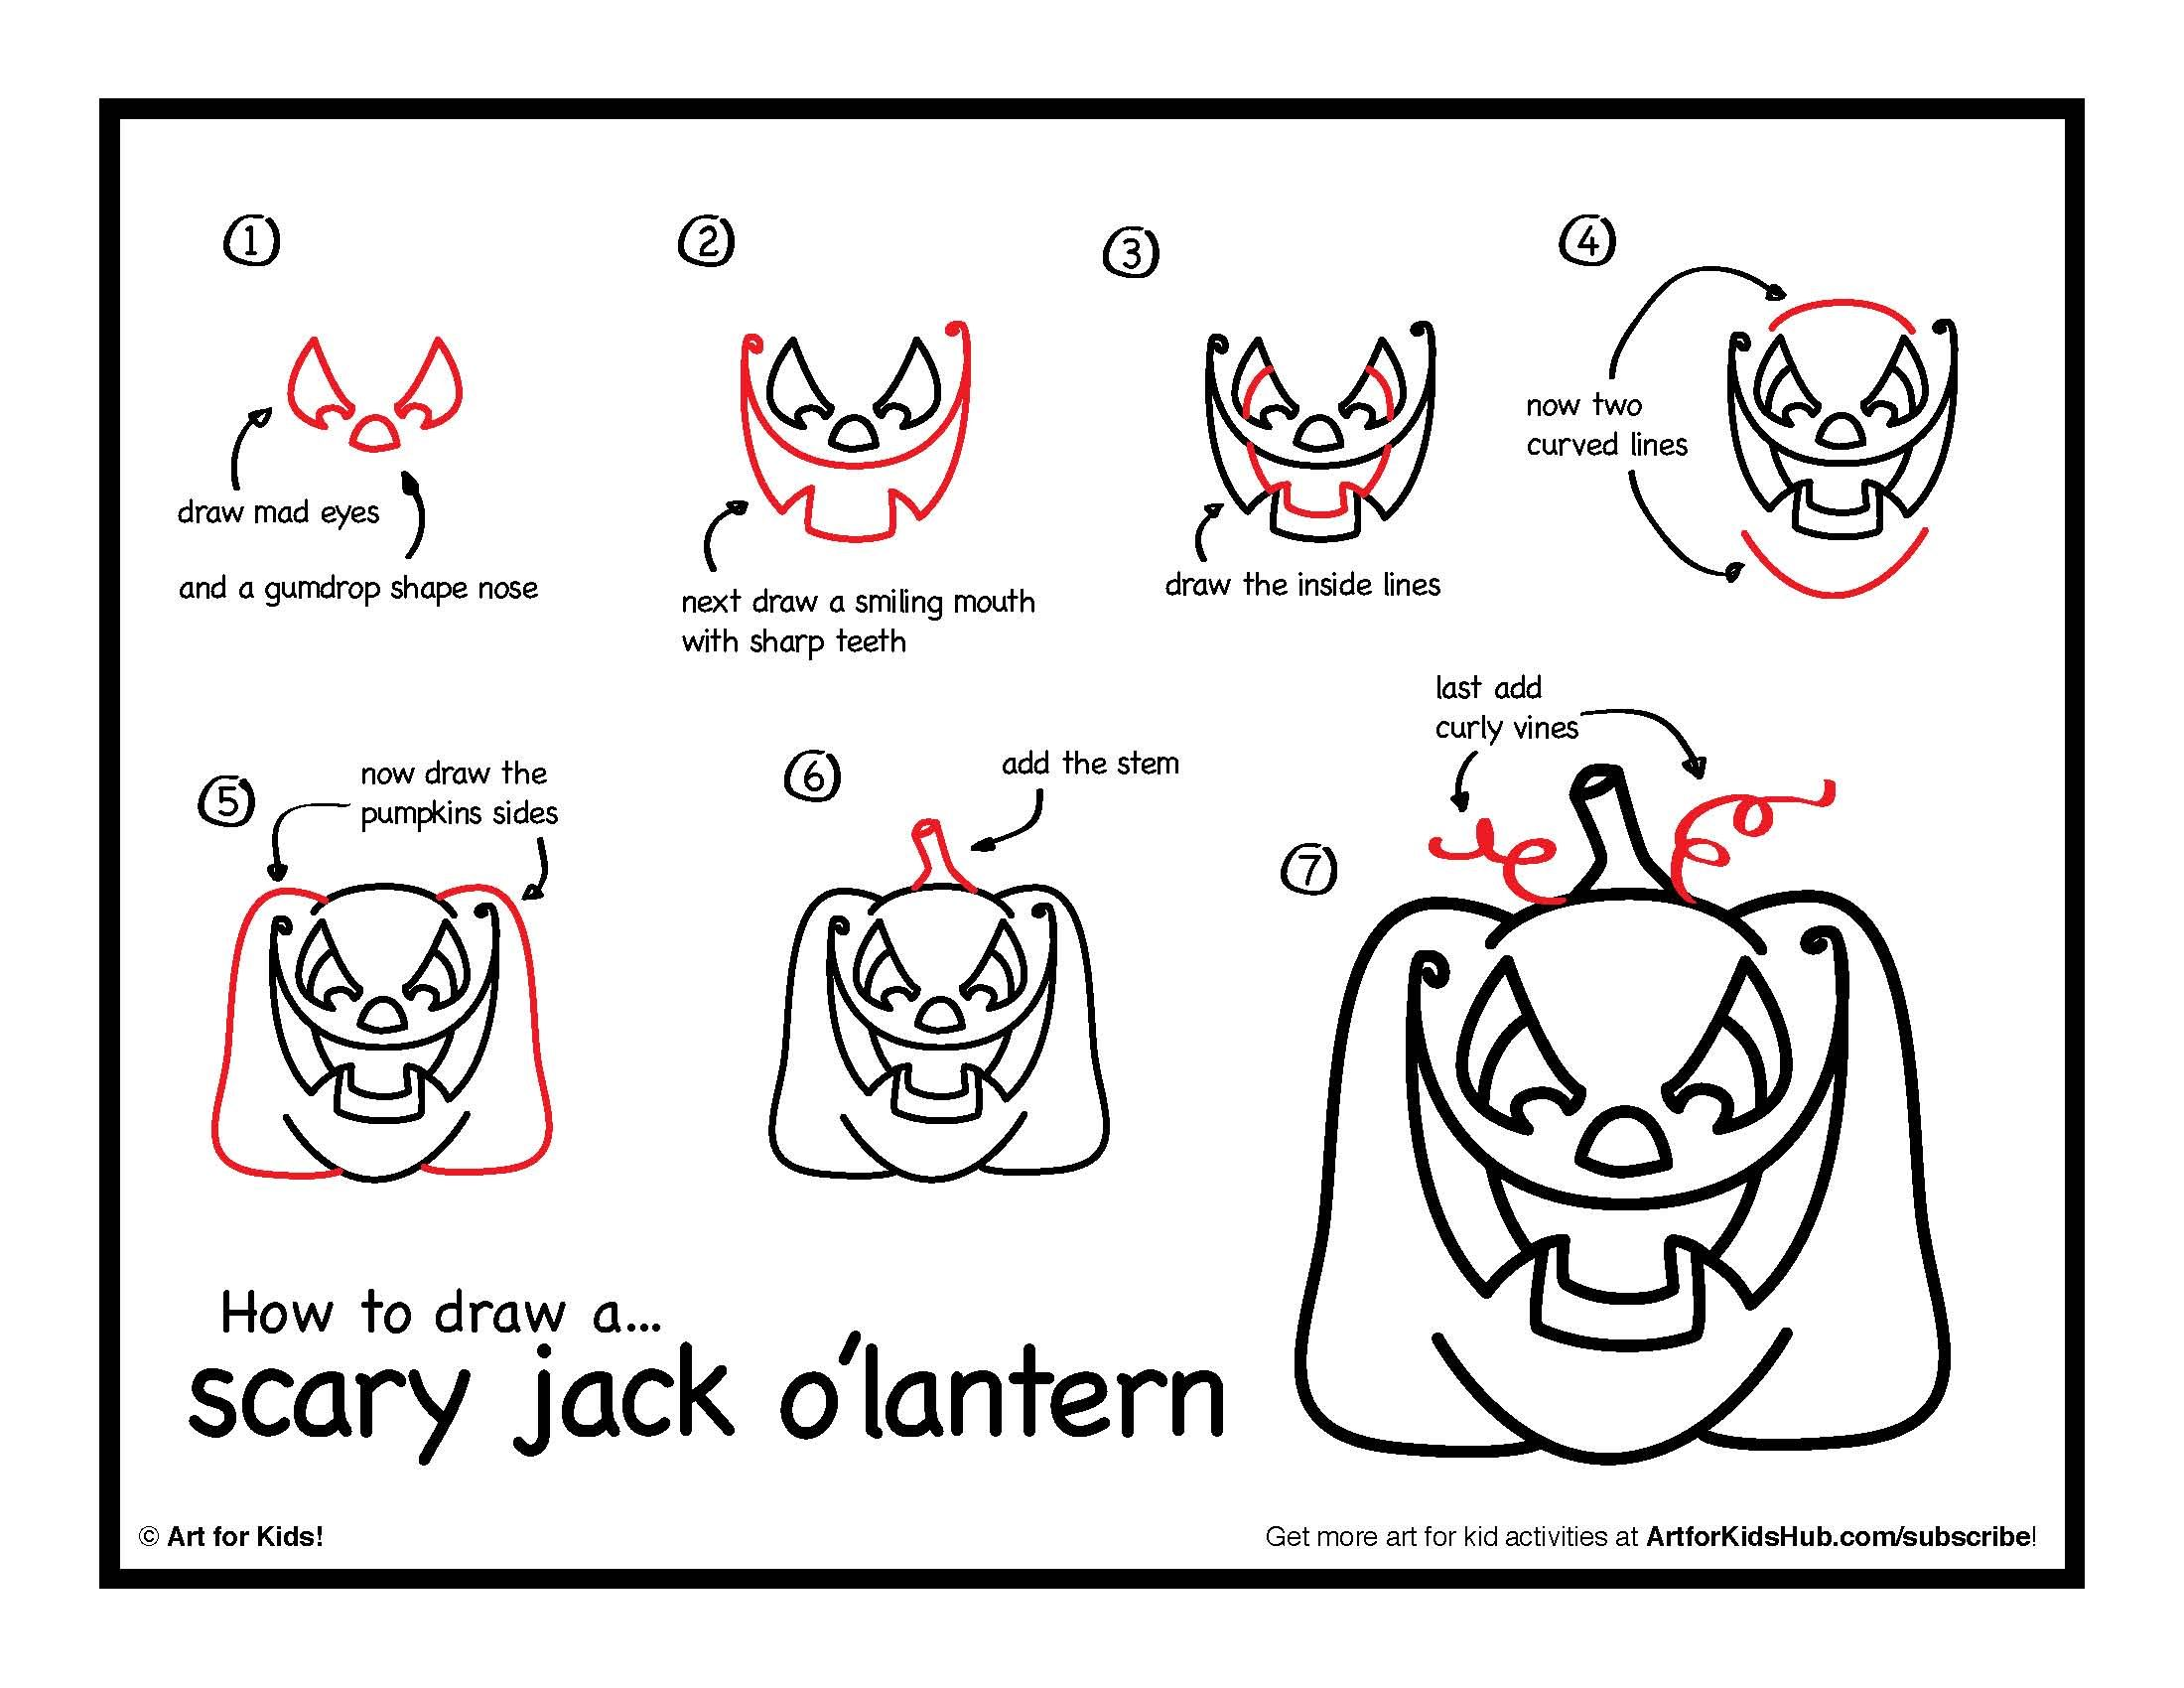 how to draw a scary jack olantern art for kids hub - How To Draw Halloween Things For Kids